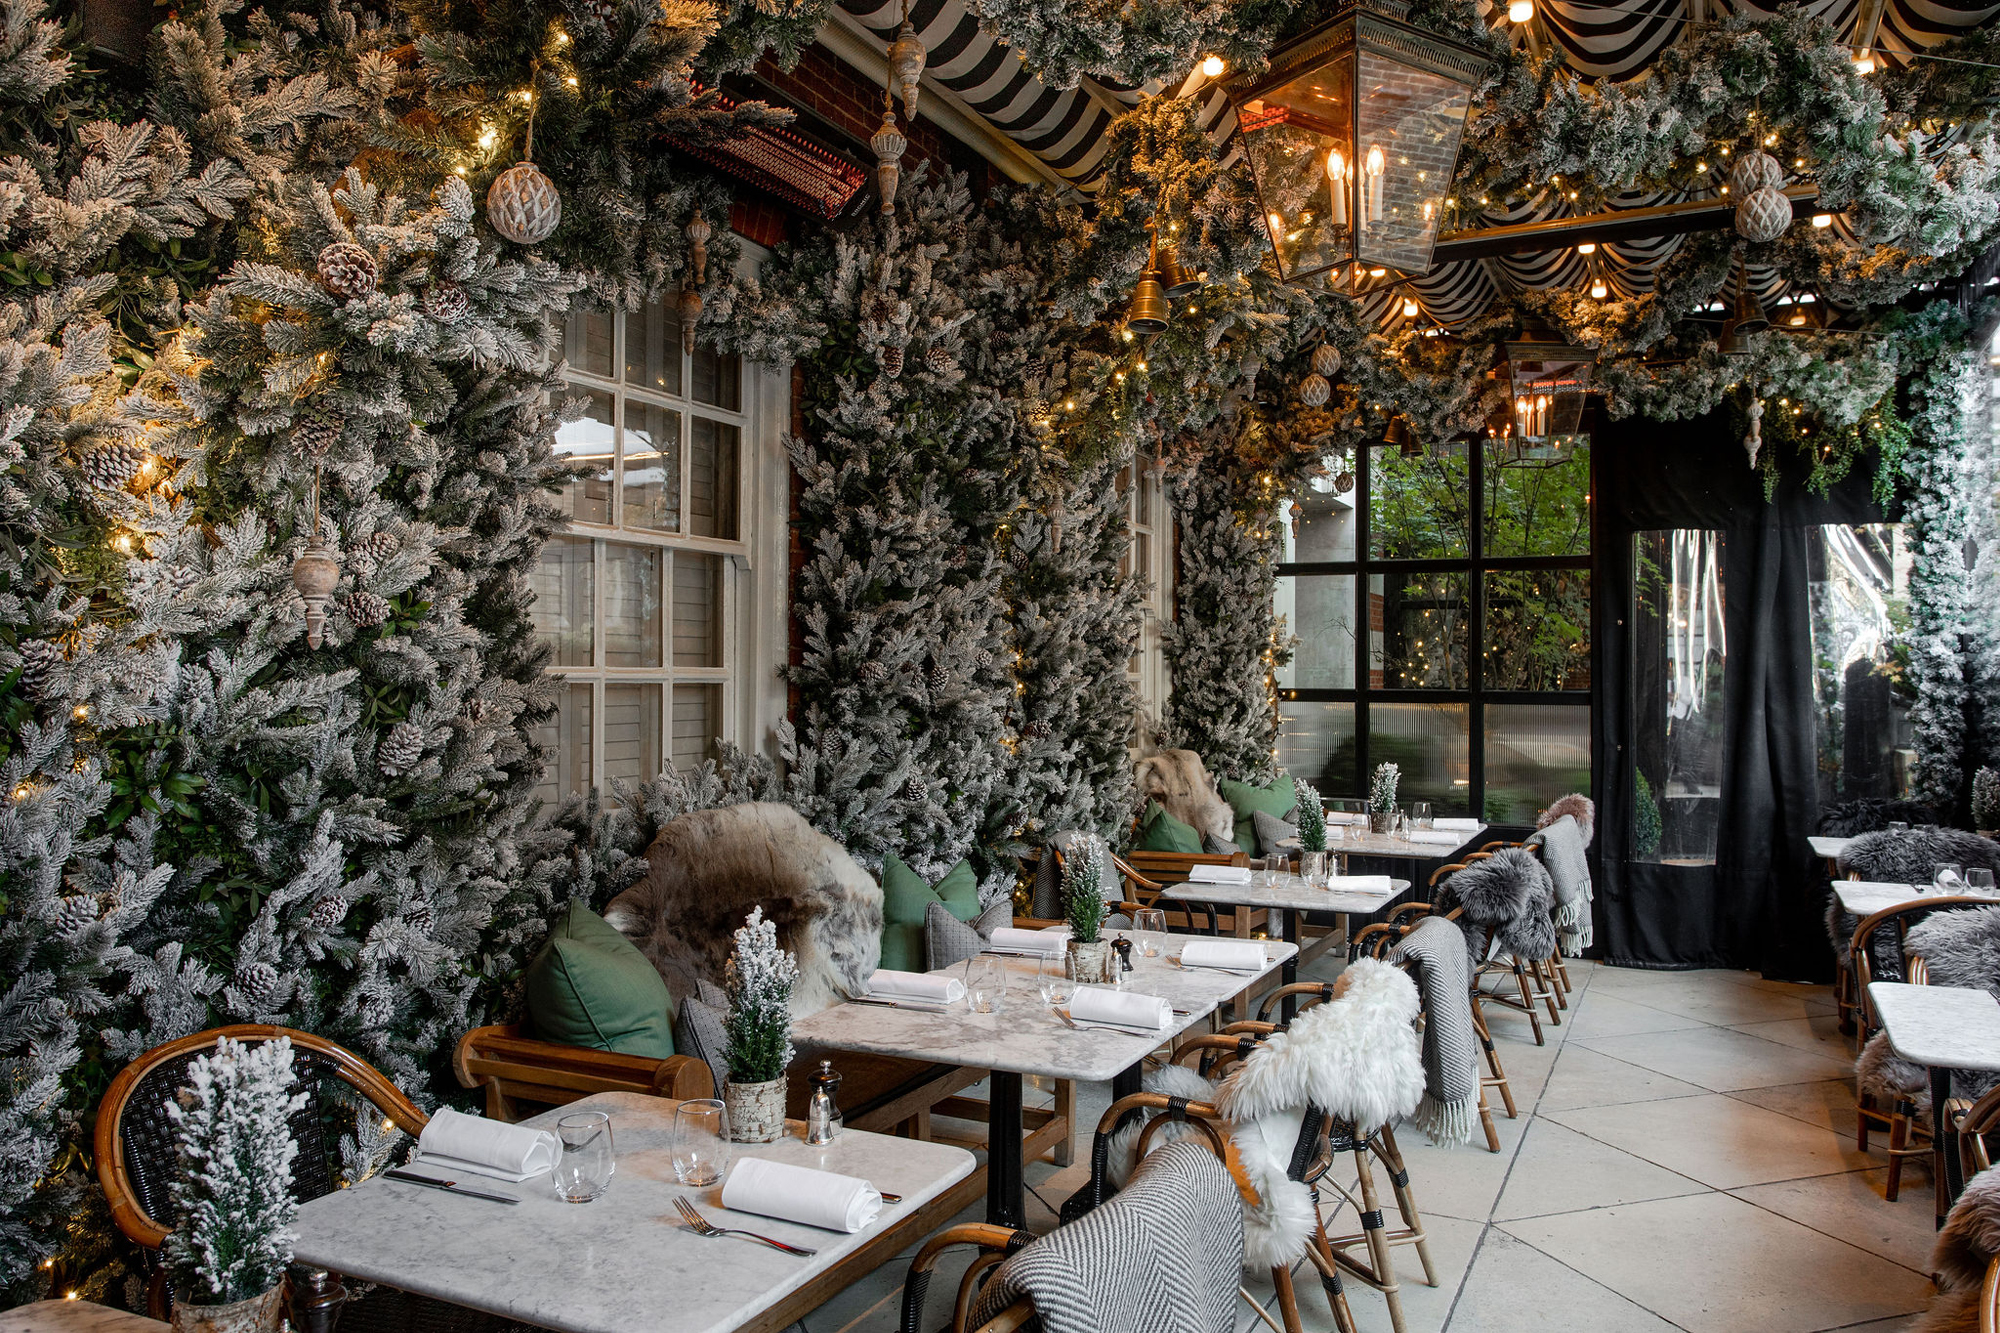 Dalloway Terrace went through an immersive transformation to create an authentic Swiss gastronomic experience